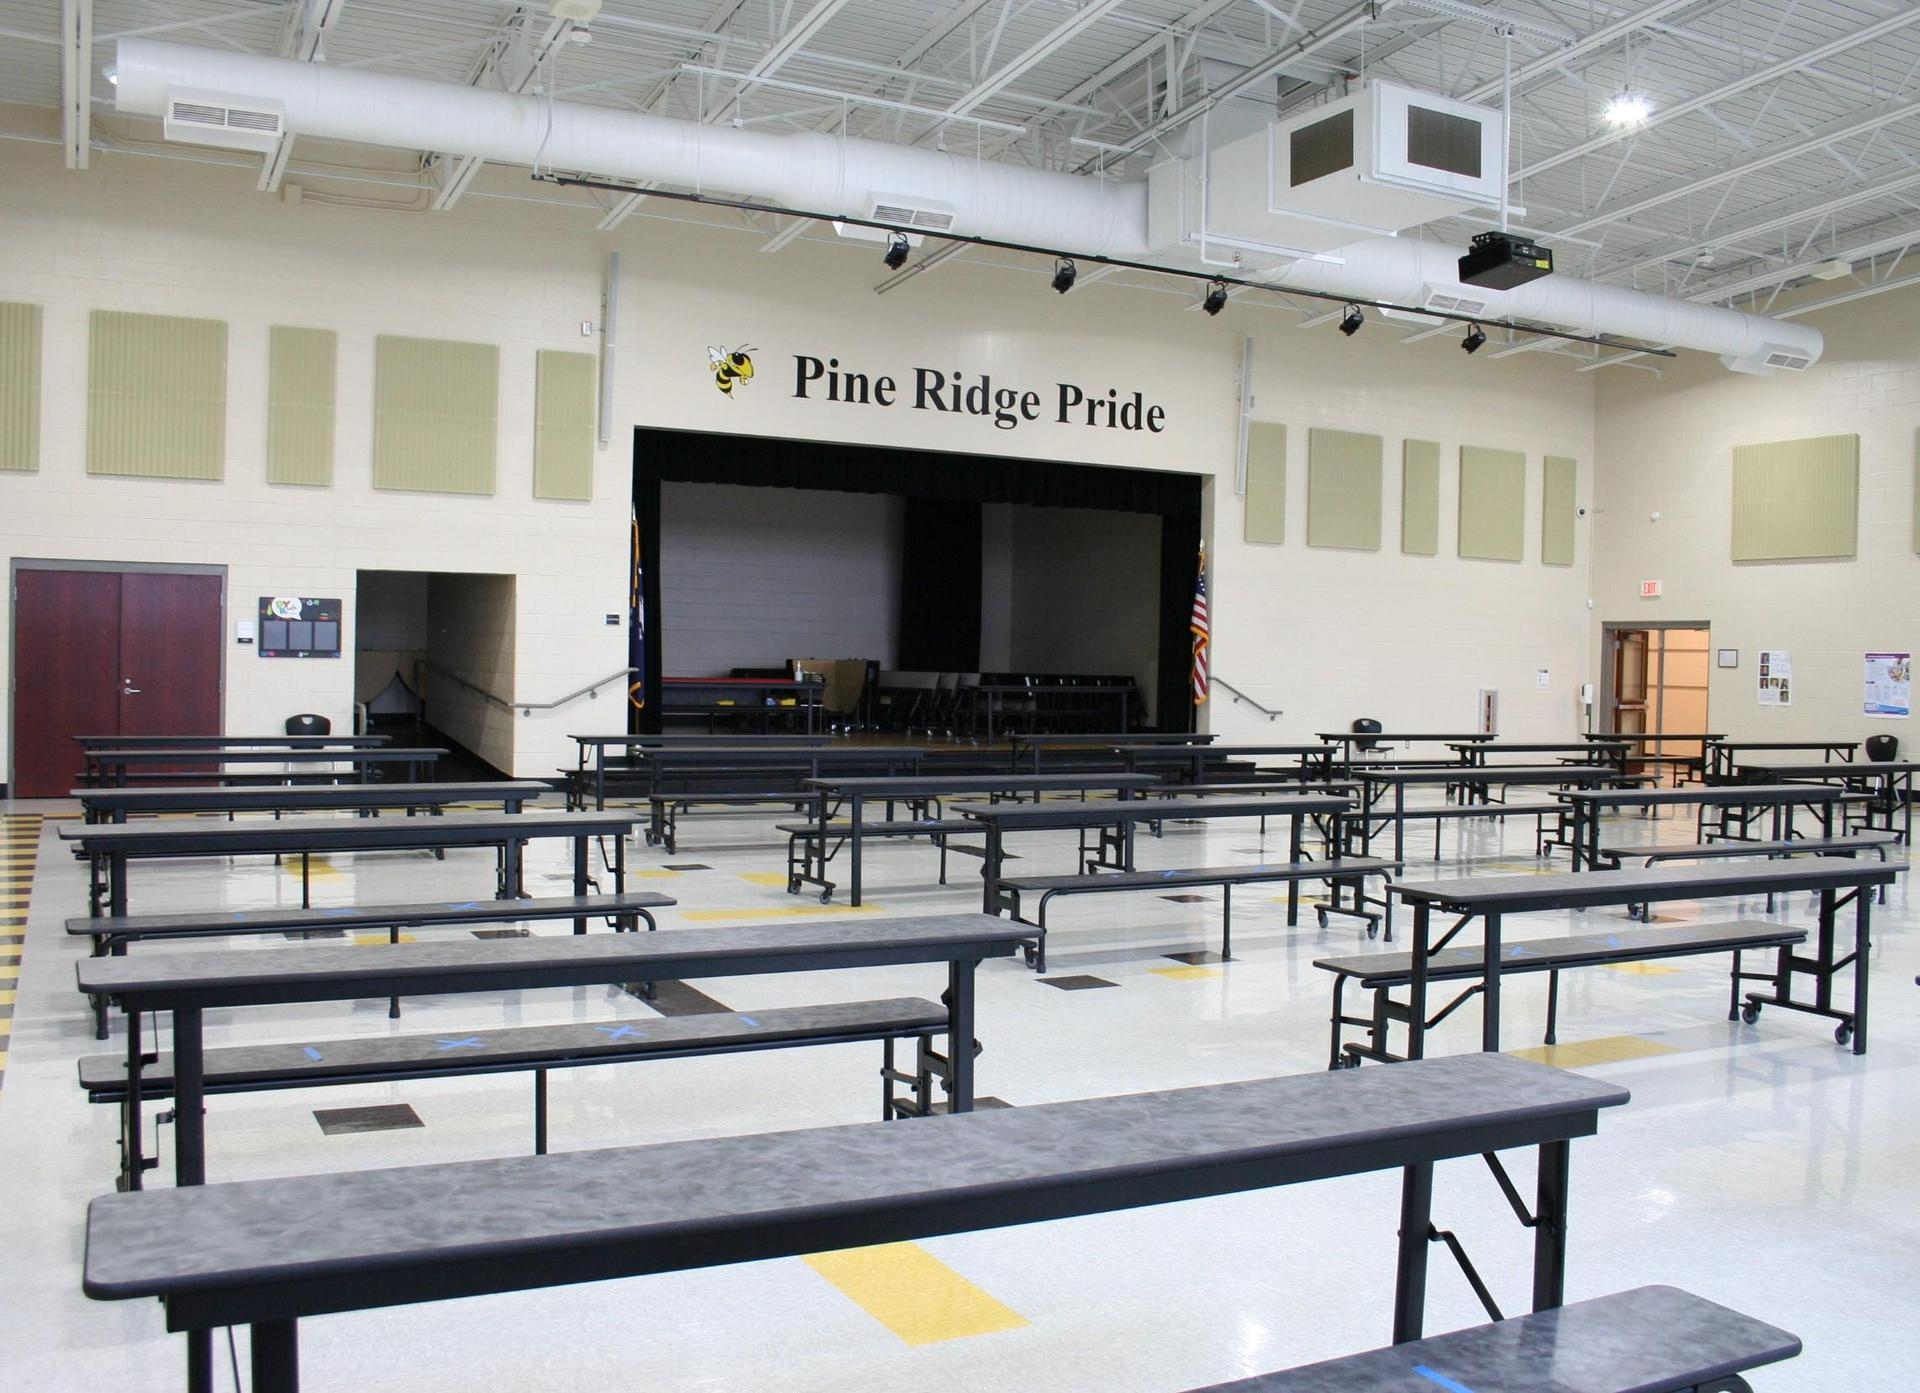 Pine Ridge Middle Cafeteria and Stage View